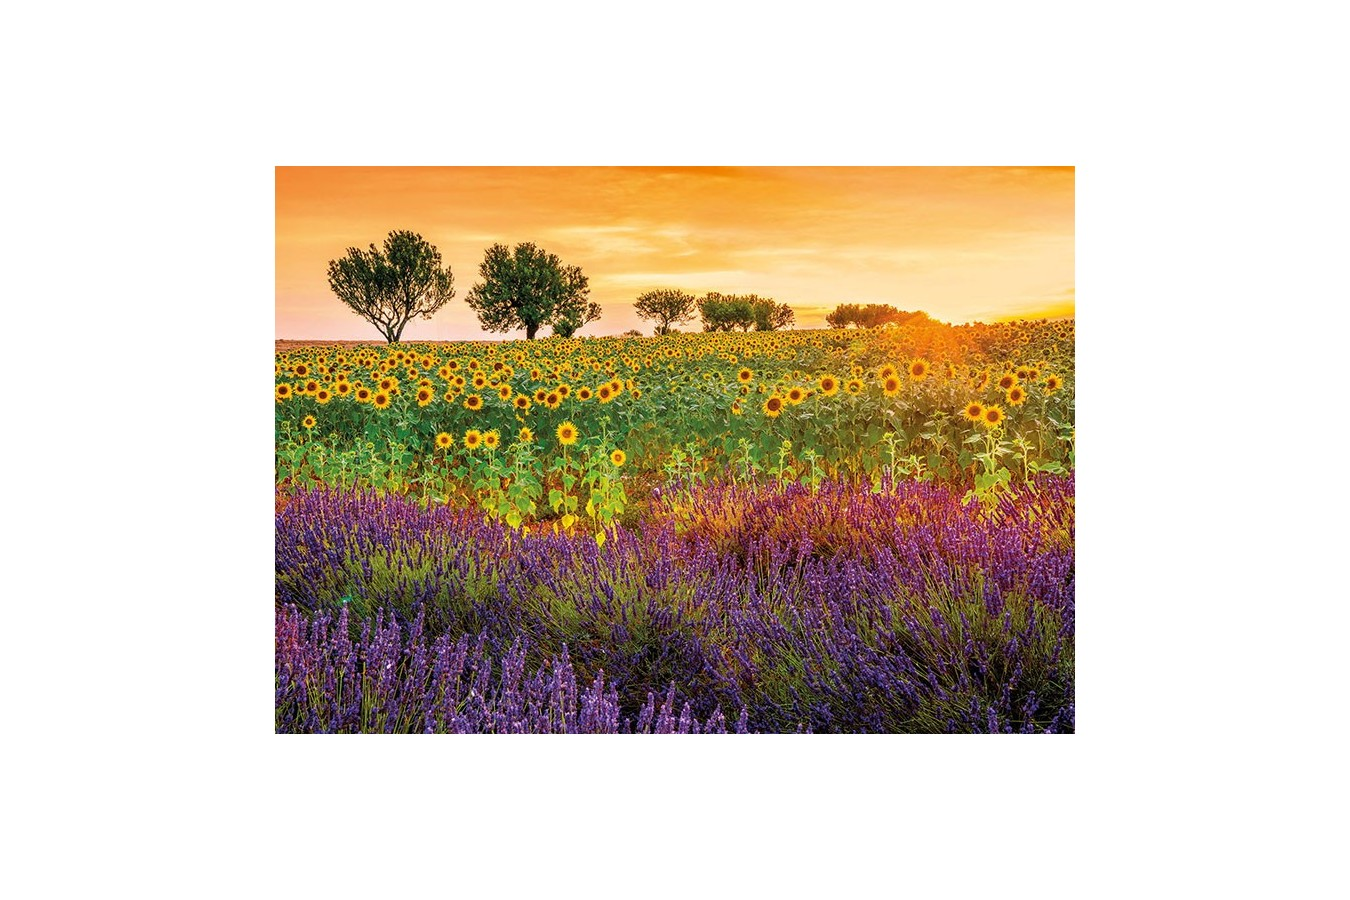 Puzzle Educa - Field of sunflowers and lavender, 1500 piese, include lipici puzzle (17669) imagine